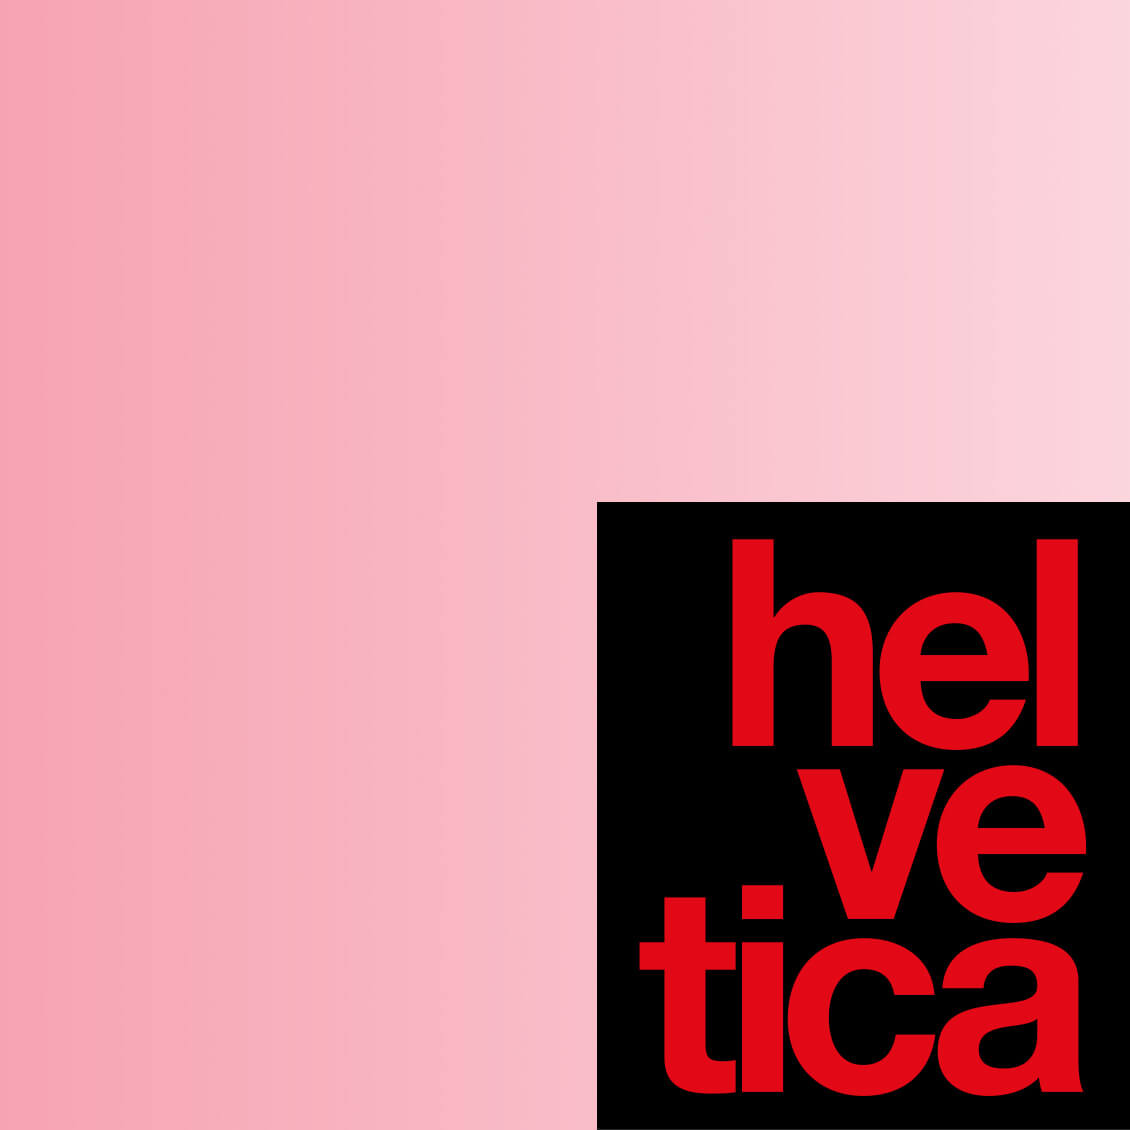 Swiss Inventions - Helvetica Typeface